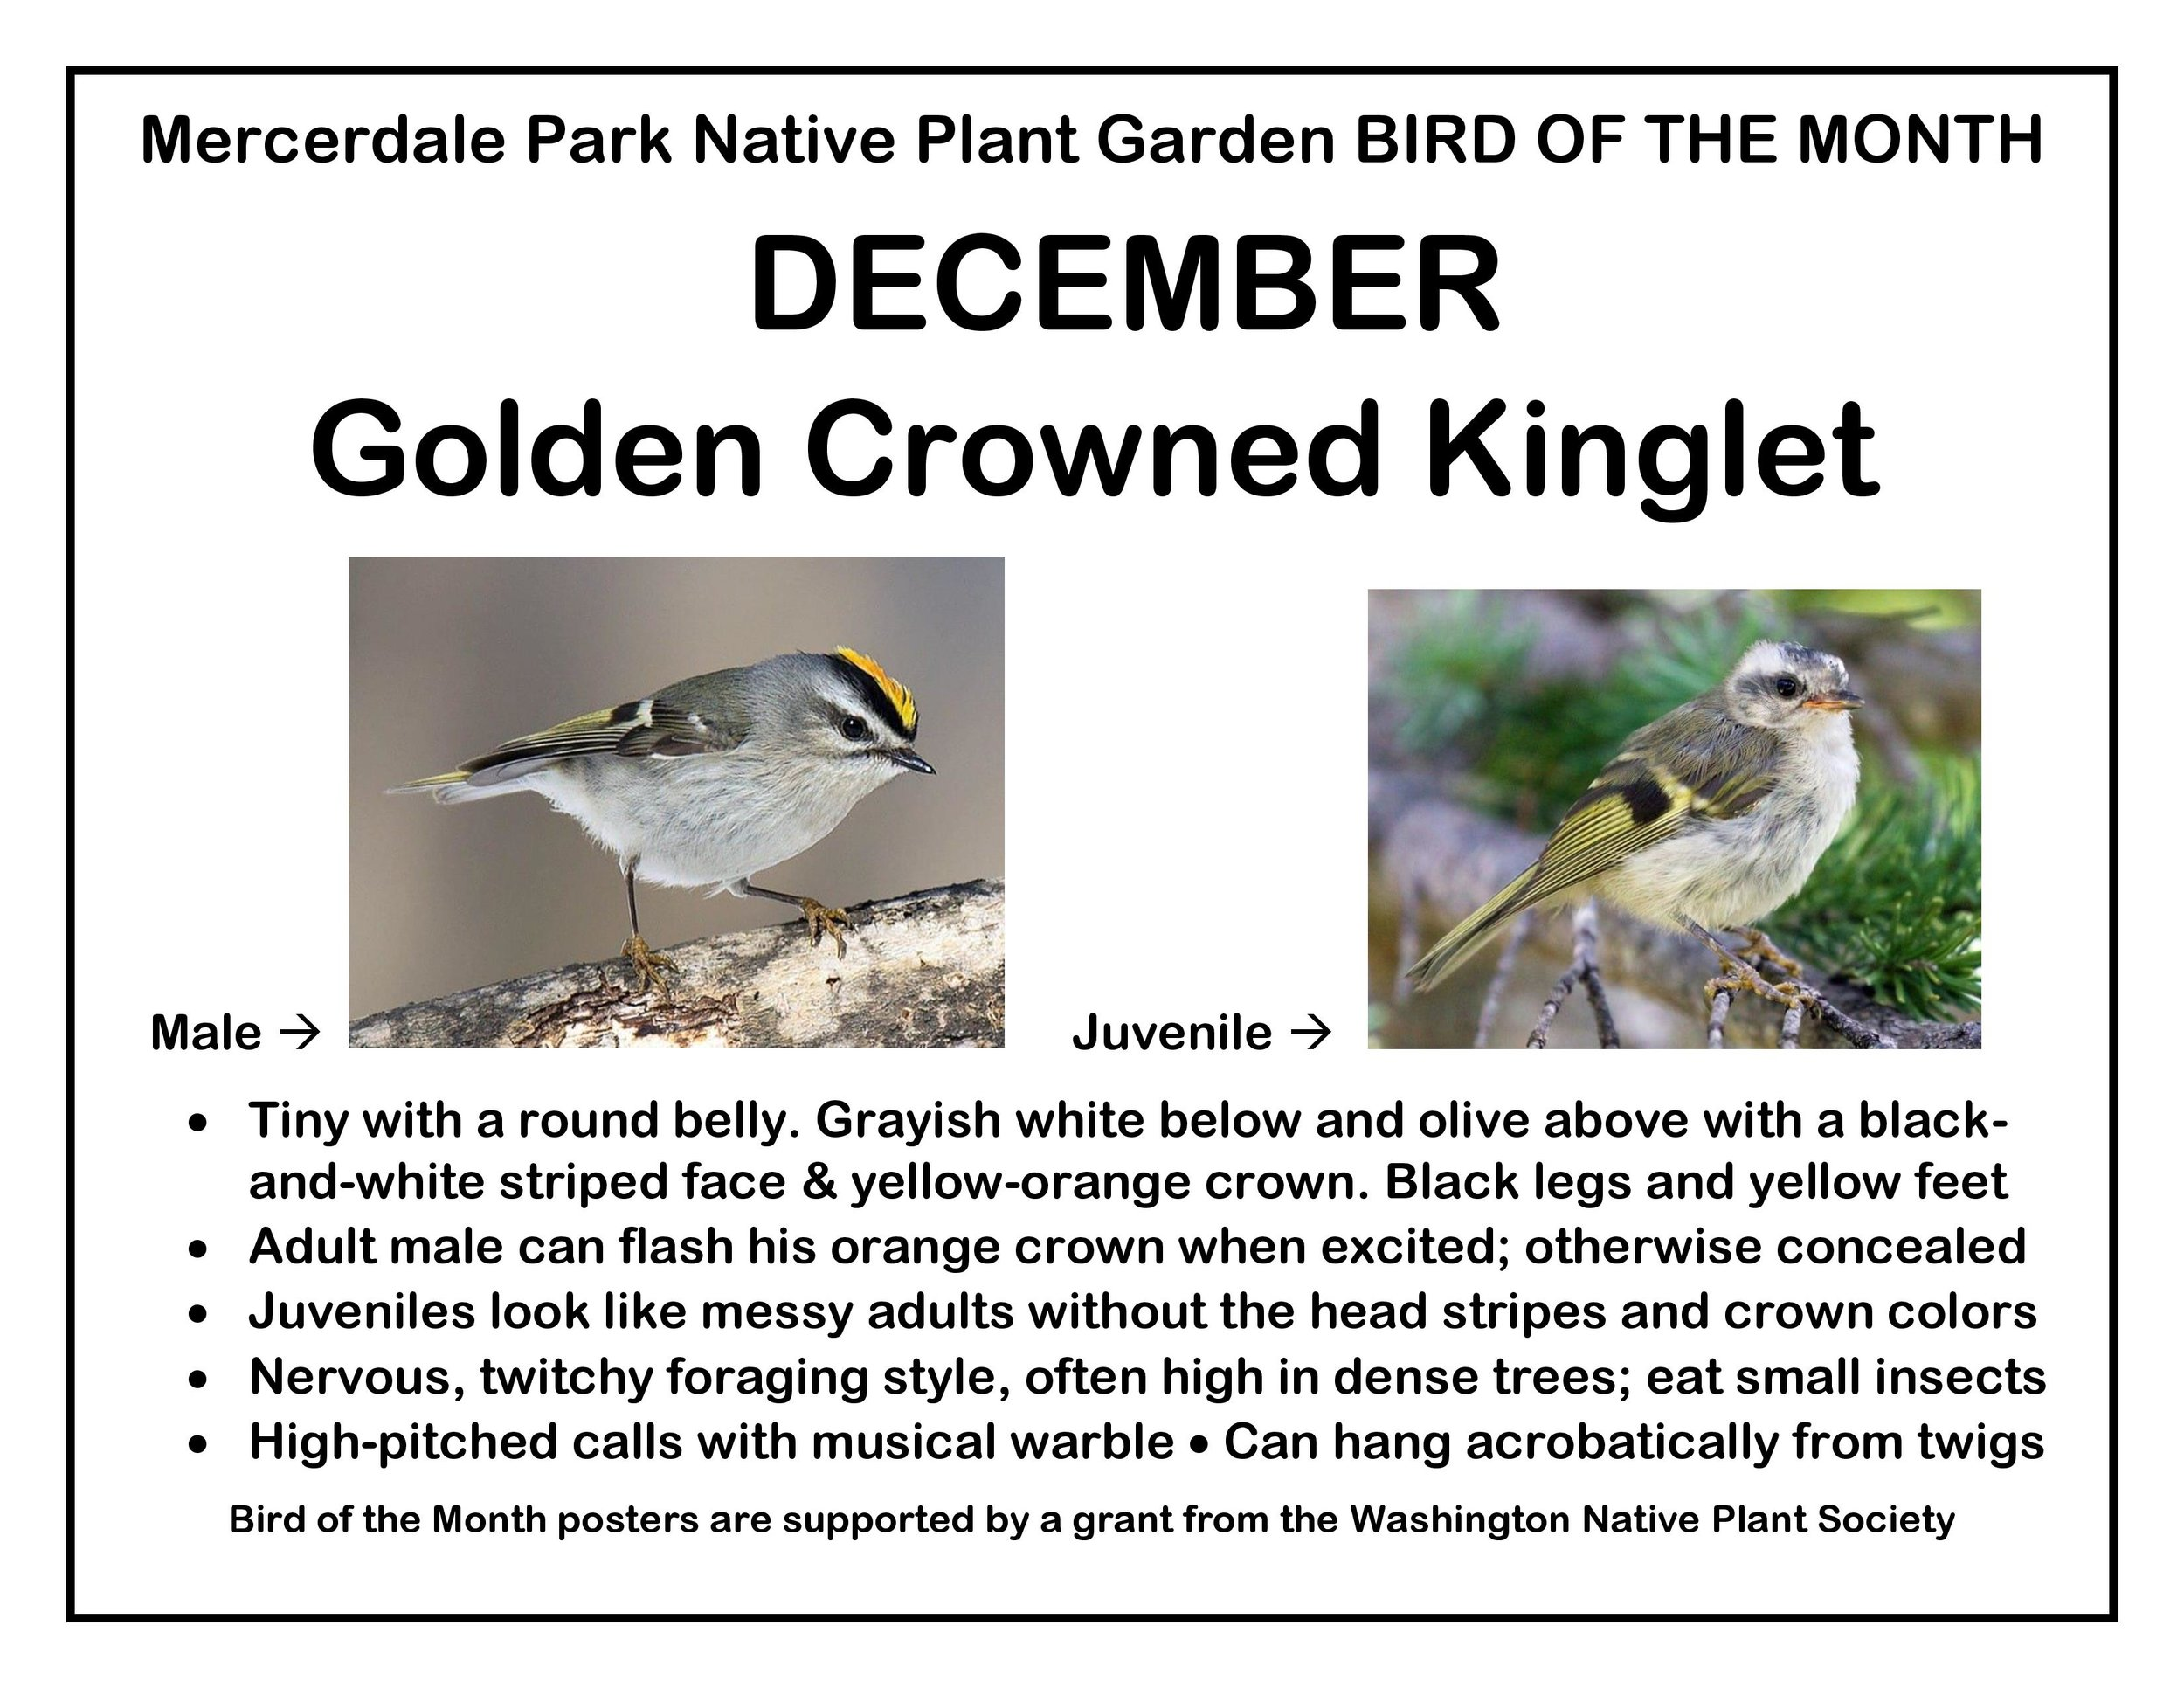 p BIRD OF THE MONTH 12 December Golden Crowned Kinglet-page-001.jpg